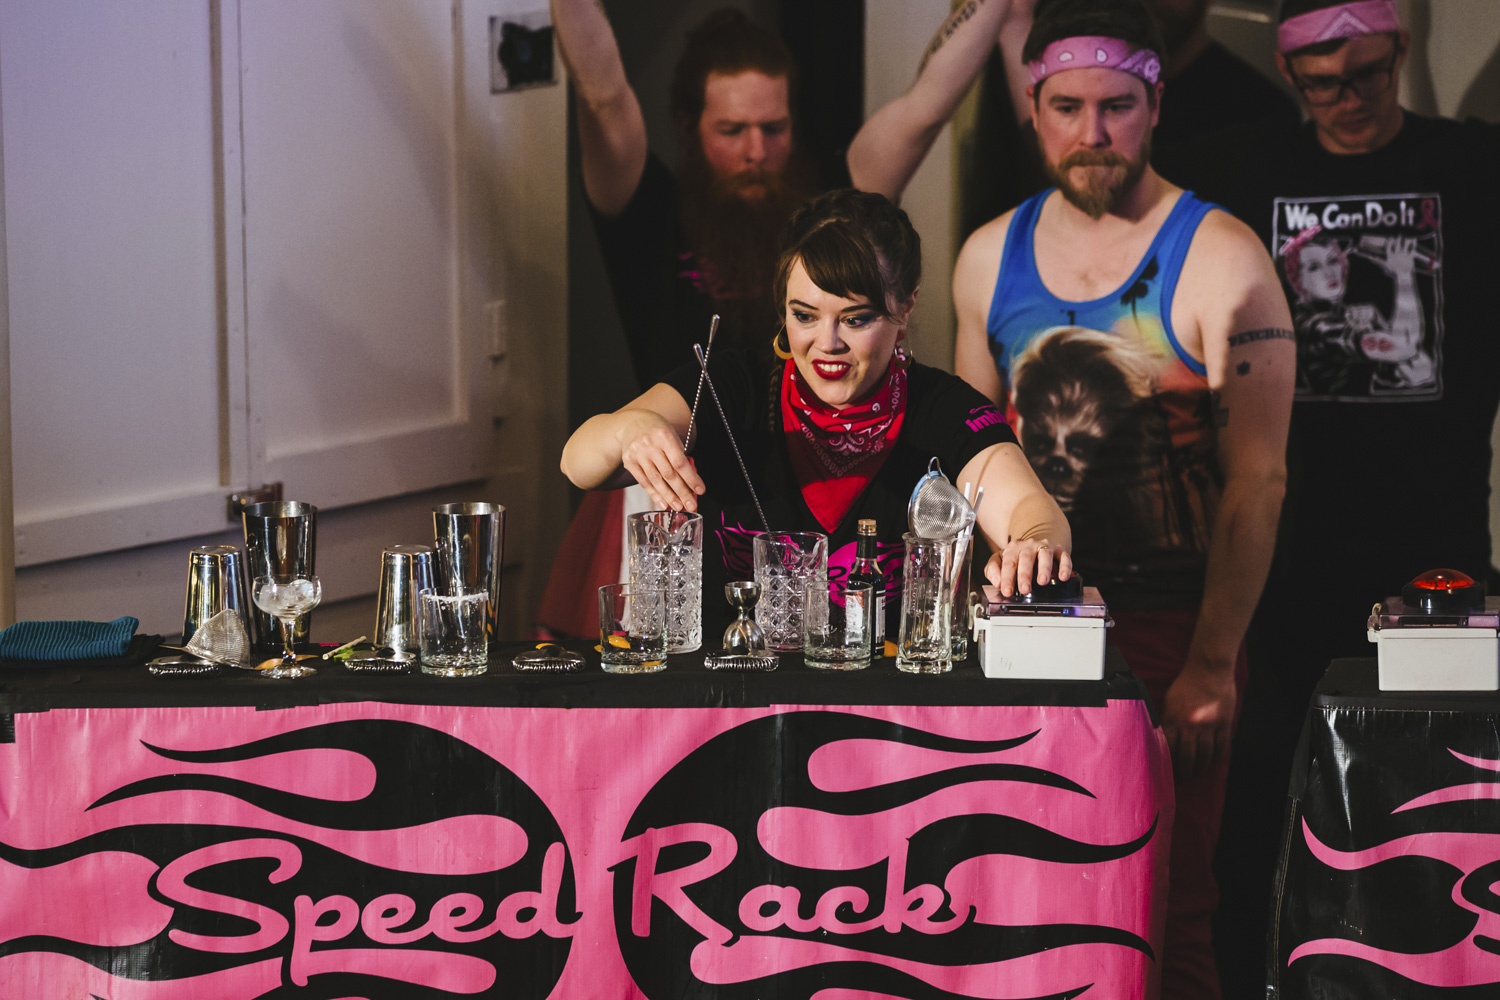 Portland bartender Lydia McLuen walked away from Speed Rack NW this past weekend as the champion! McLuen bartends at Bar Casa Vale, and won the competition with a time of two minutes and thirty-seven seconds. The all-female speed-bartending competition happens annually, and raises money for breast cancer. The bartender with who is able to make their drinks in the least time wins the title! (Image: Sunita Martini / Seattle Refined)